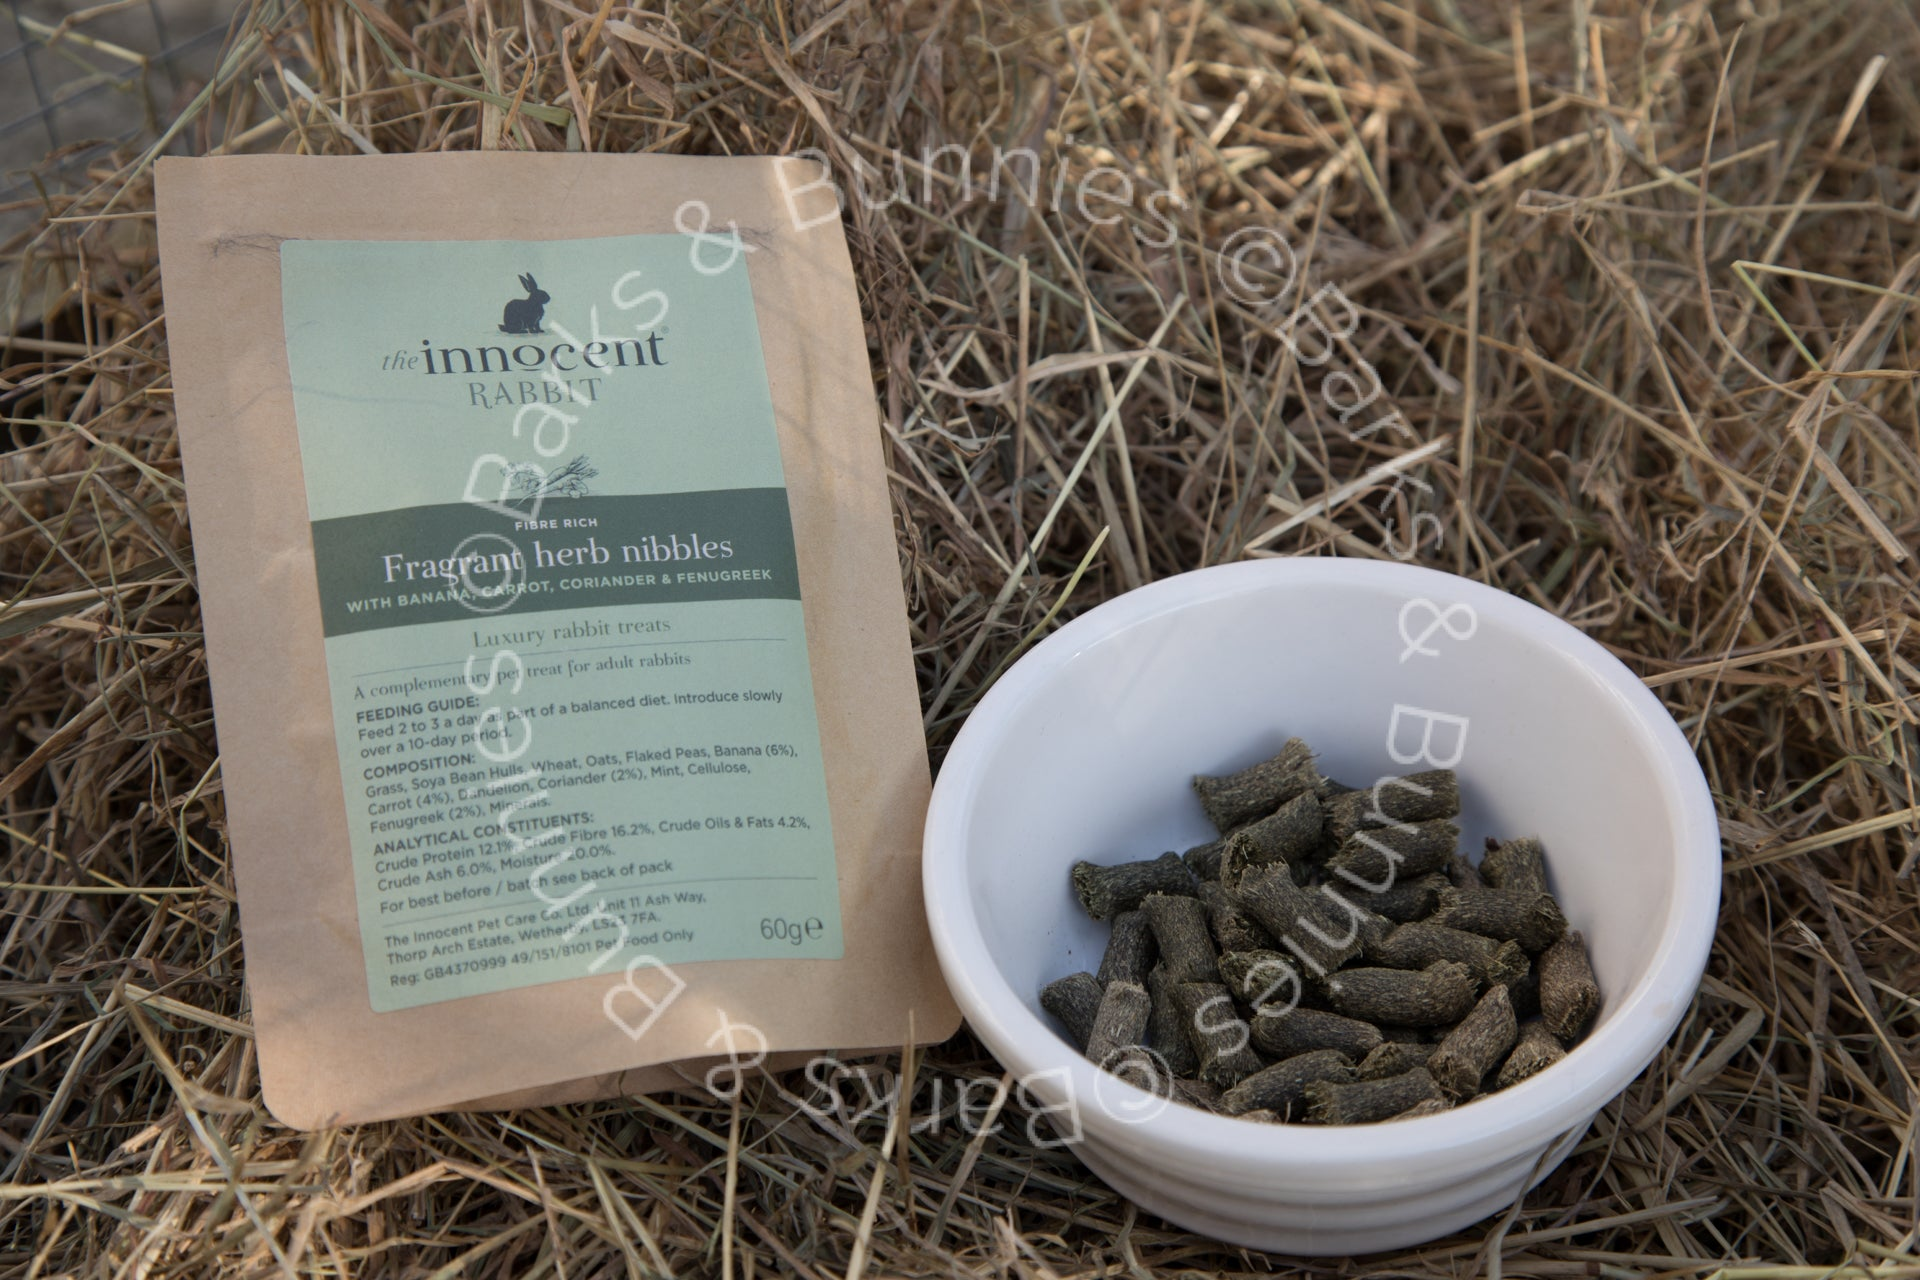 INNOCENT RABBIT FRAGRANT HERB NIBBLES REVIEW